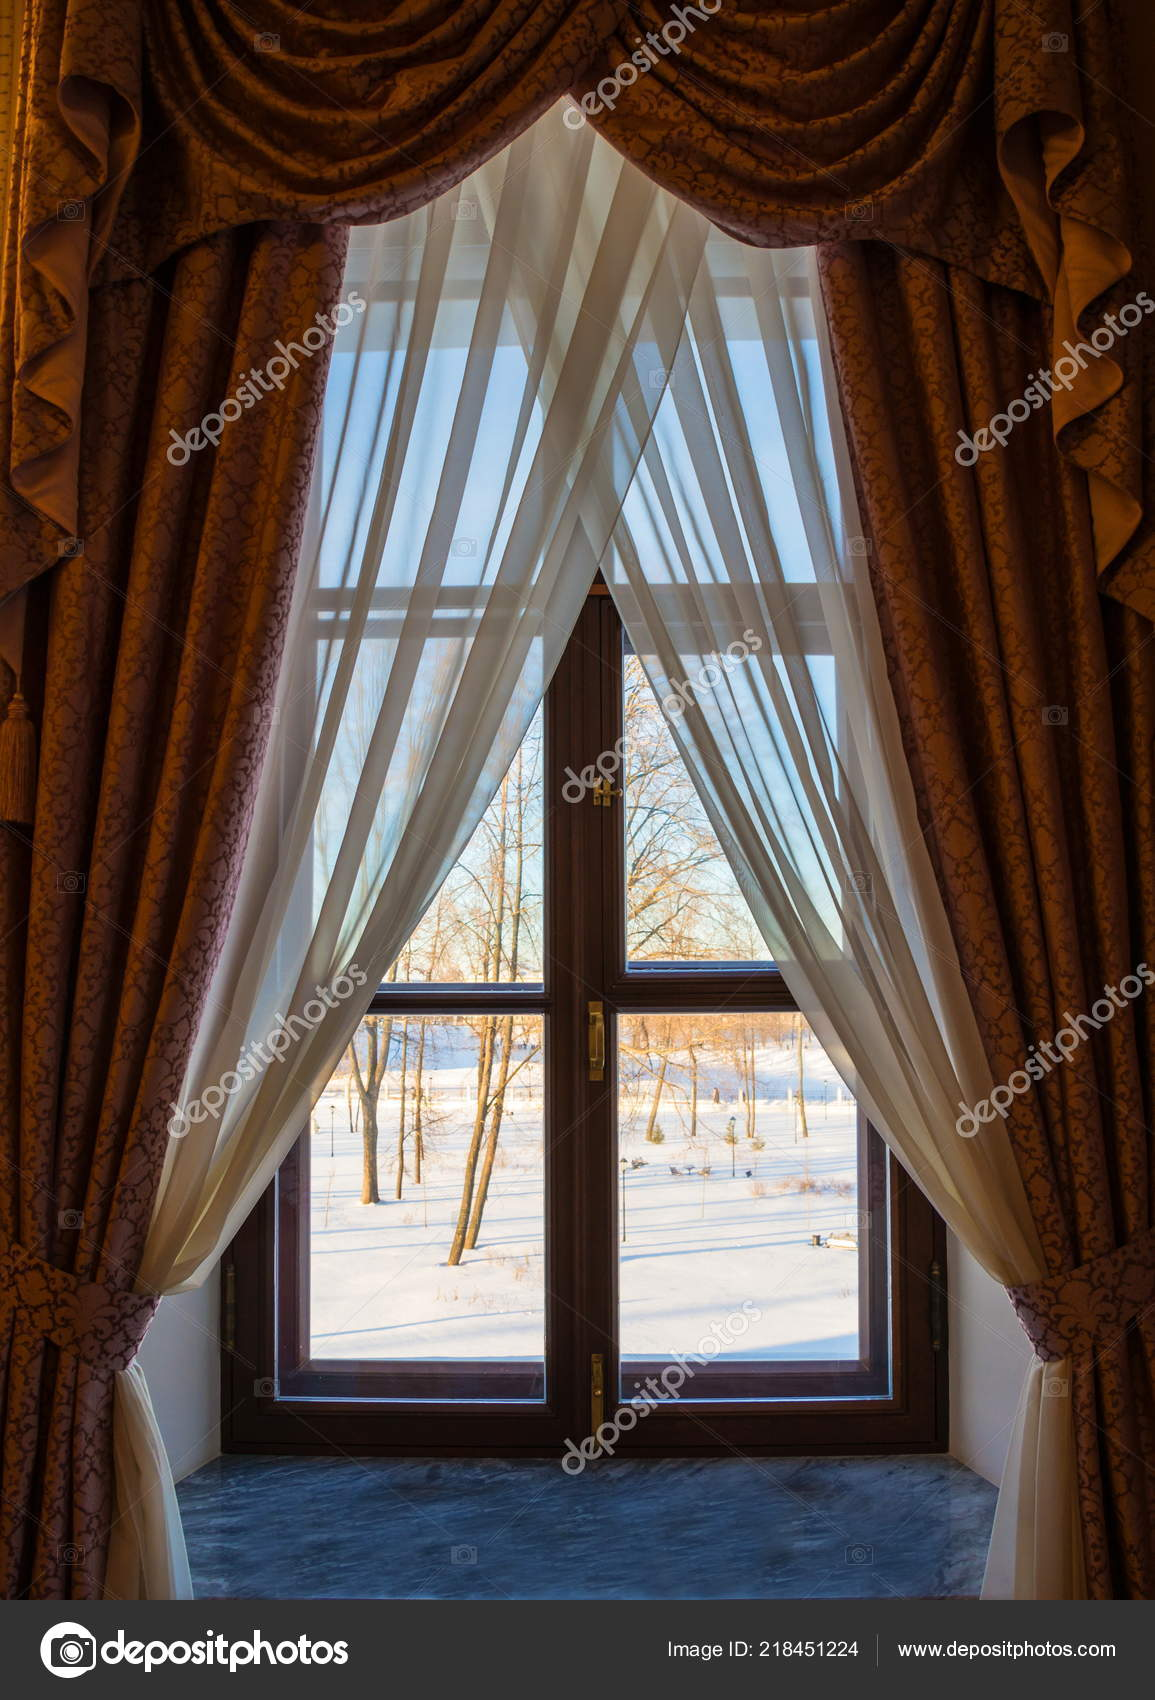 Winter Scene Window Curtains Window Beautiful Curtains Winter Landscape Window Stock Photo C Irinadance 218451224